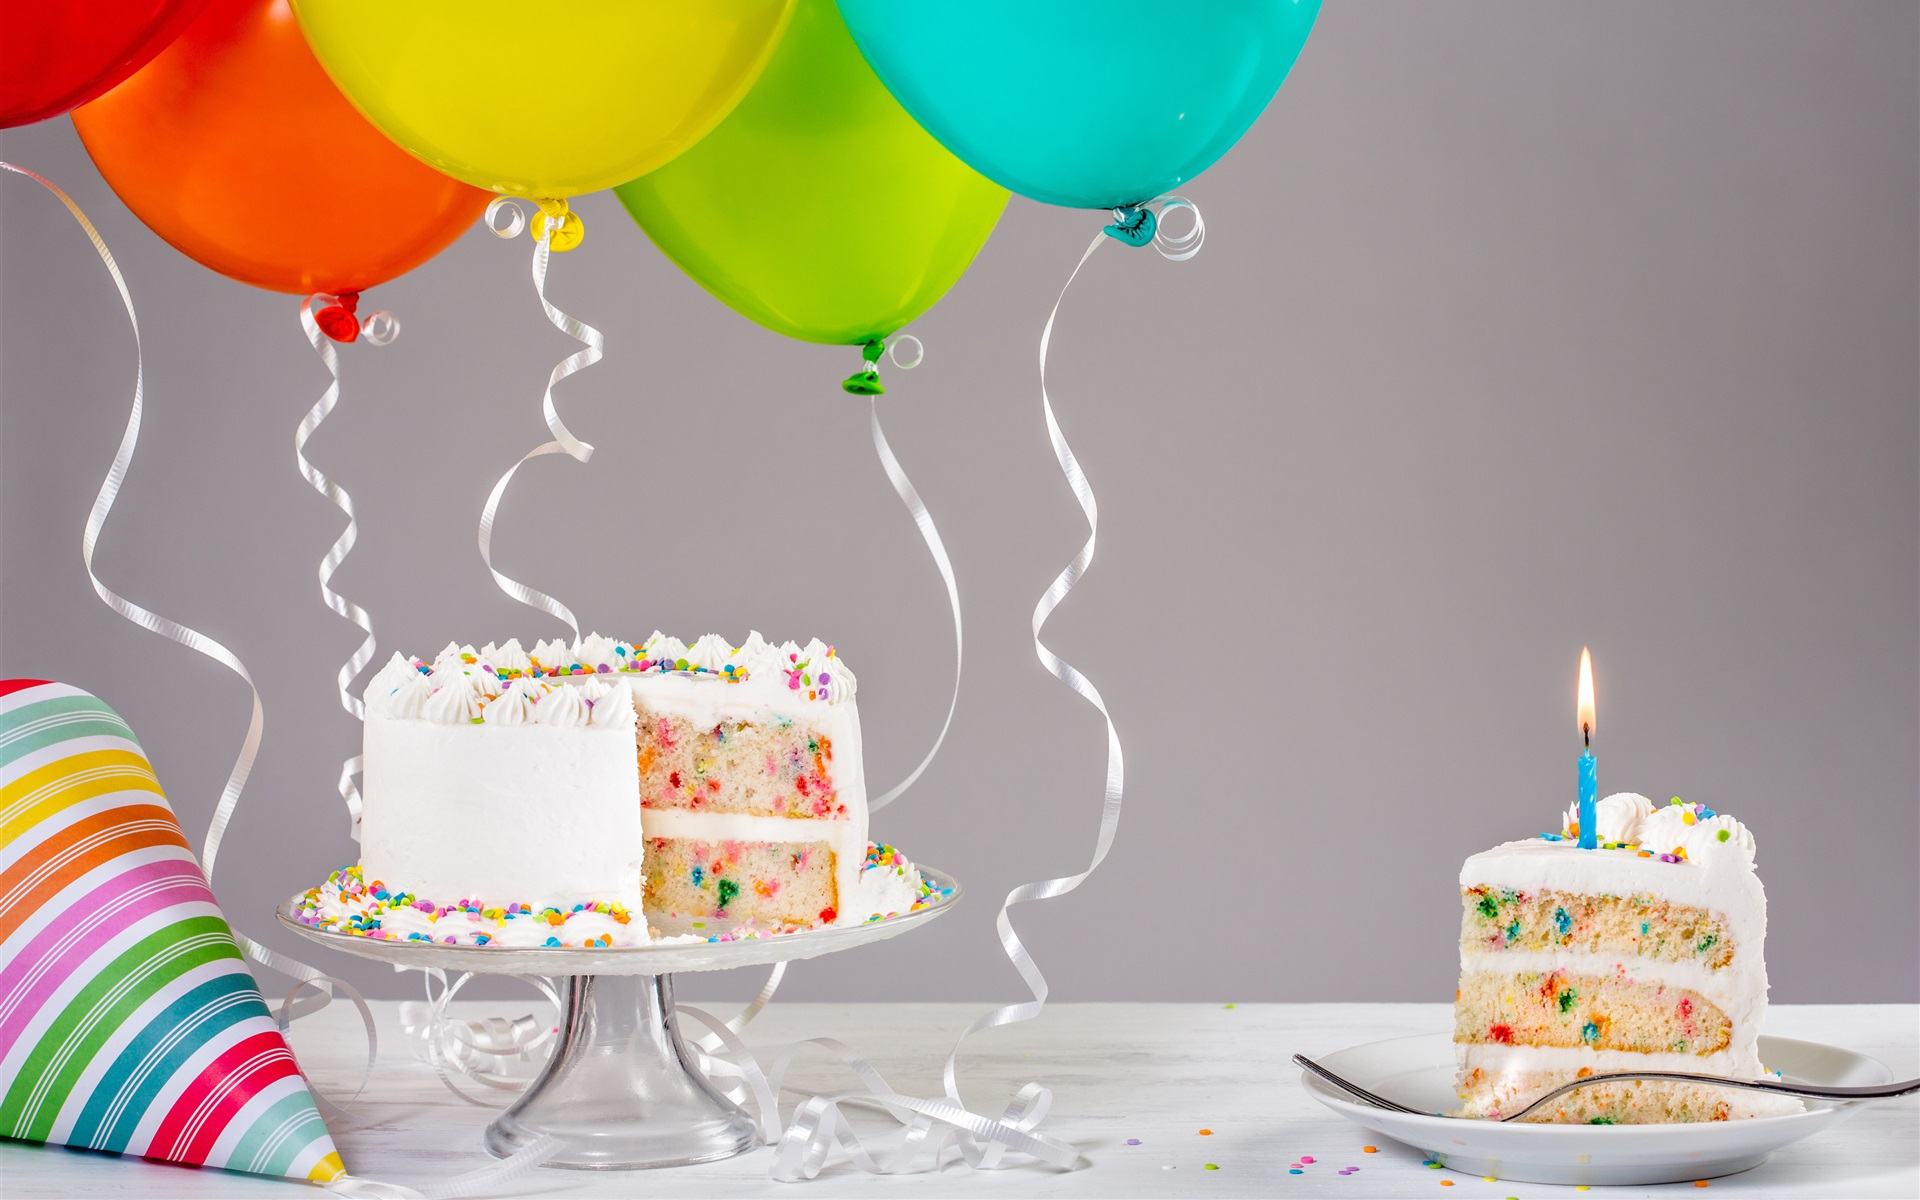 Download Wallpaper Birthday cake candle balloons ribbon